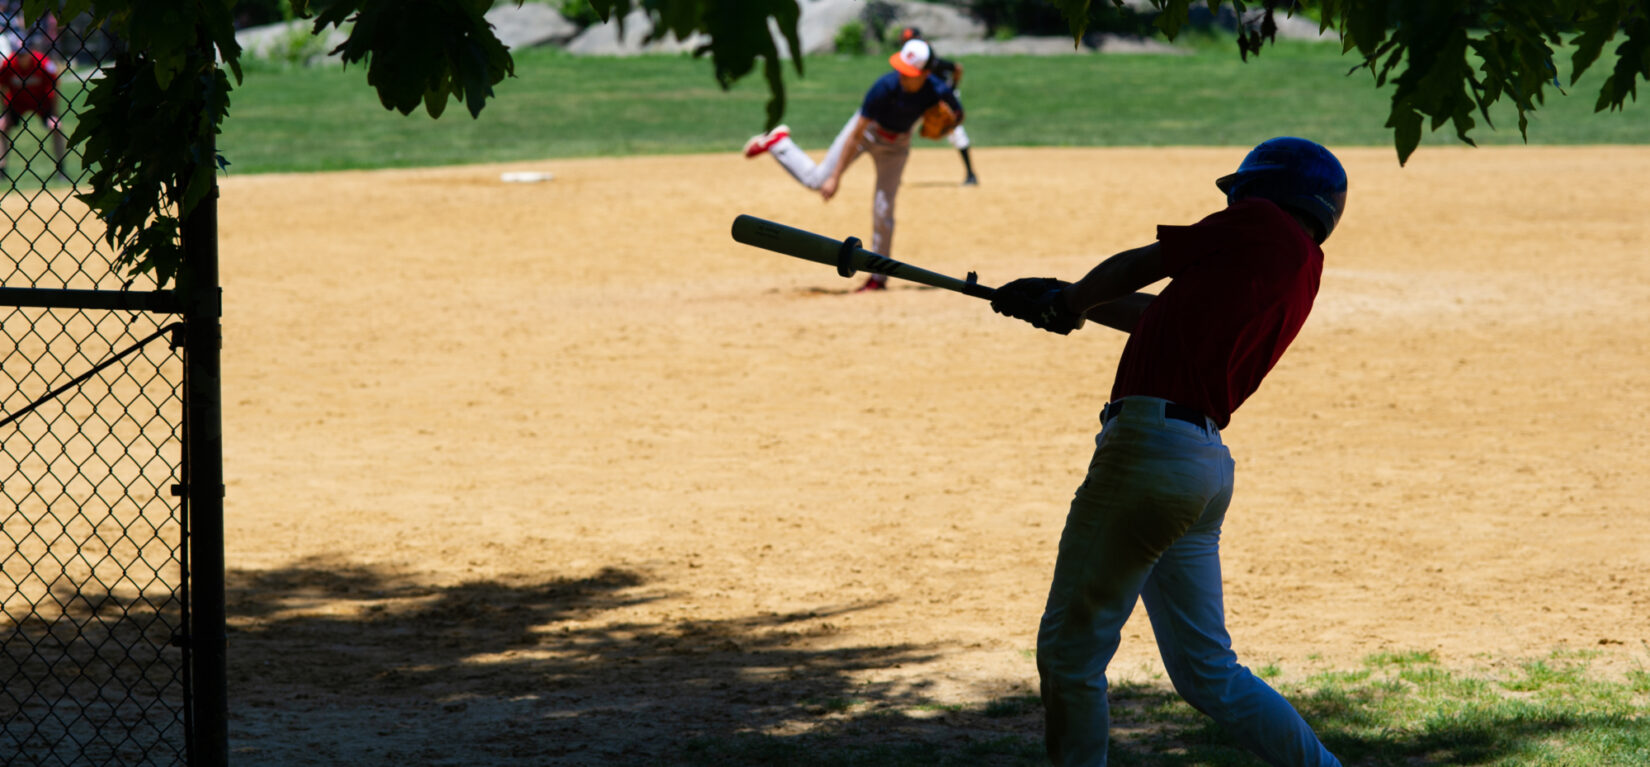 A younger player is on-deck, in the shade, ready for his at-bat